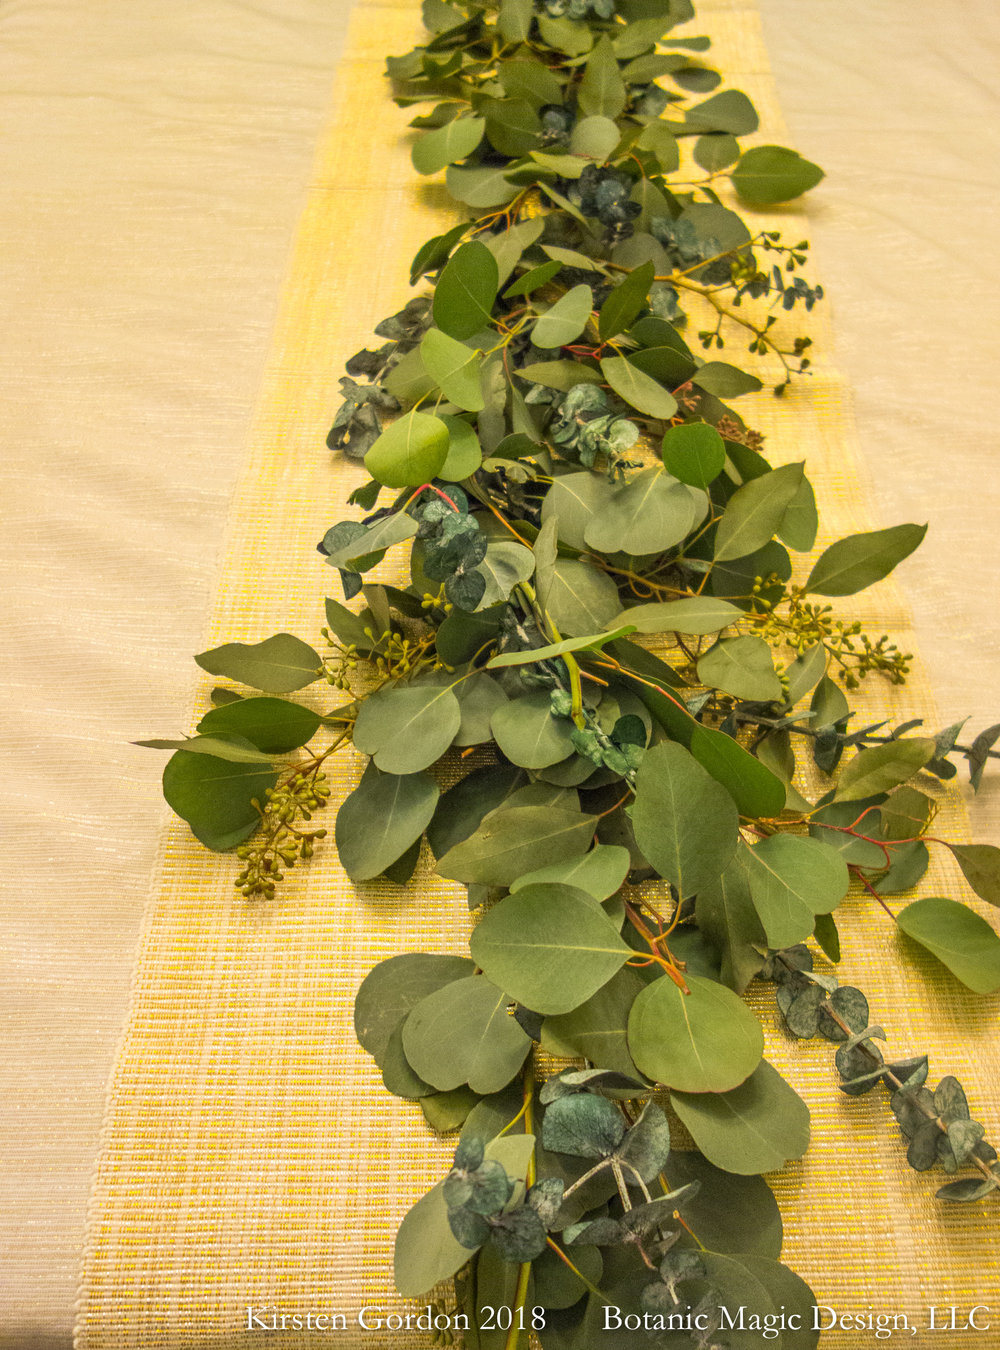 Handmade Greens Garland - Eucalyptus shown  Fragrant and fresh, it can be further embellished with fresh cut flowers, and used in many ways from table to doorway and more.